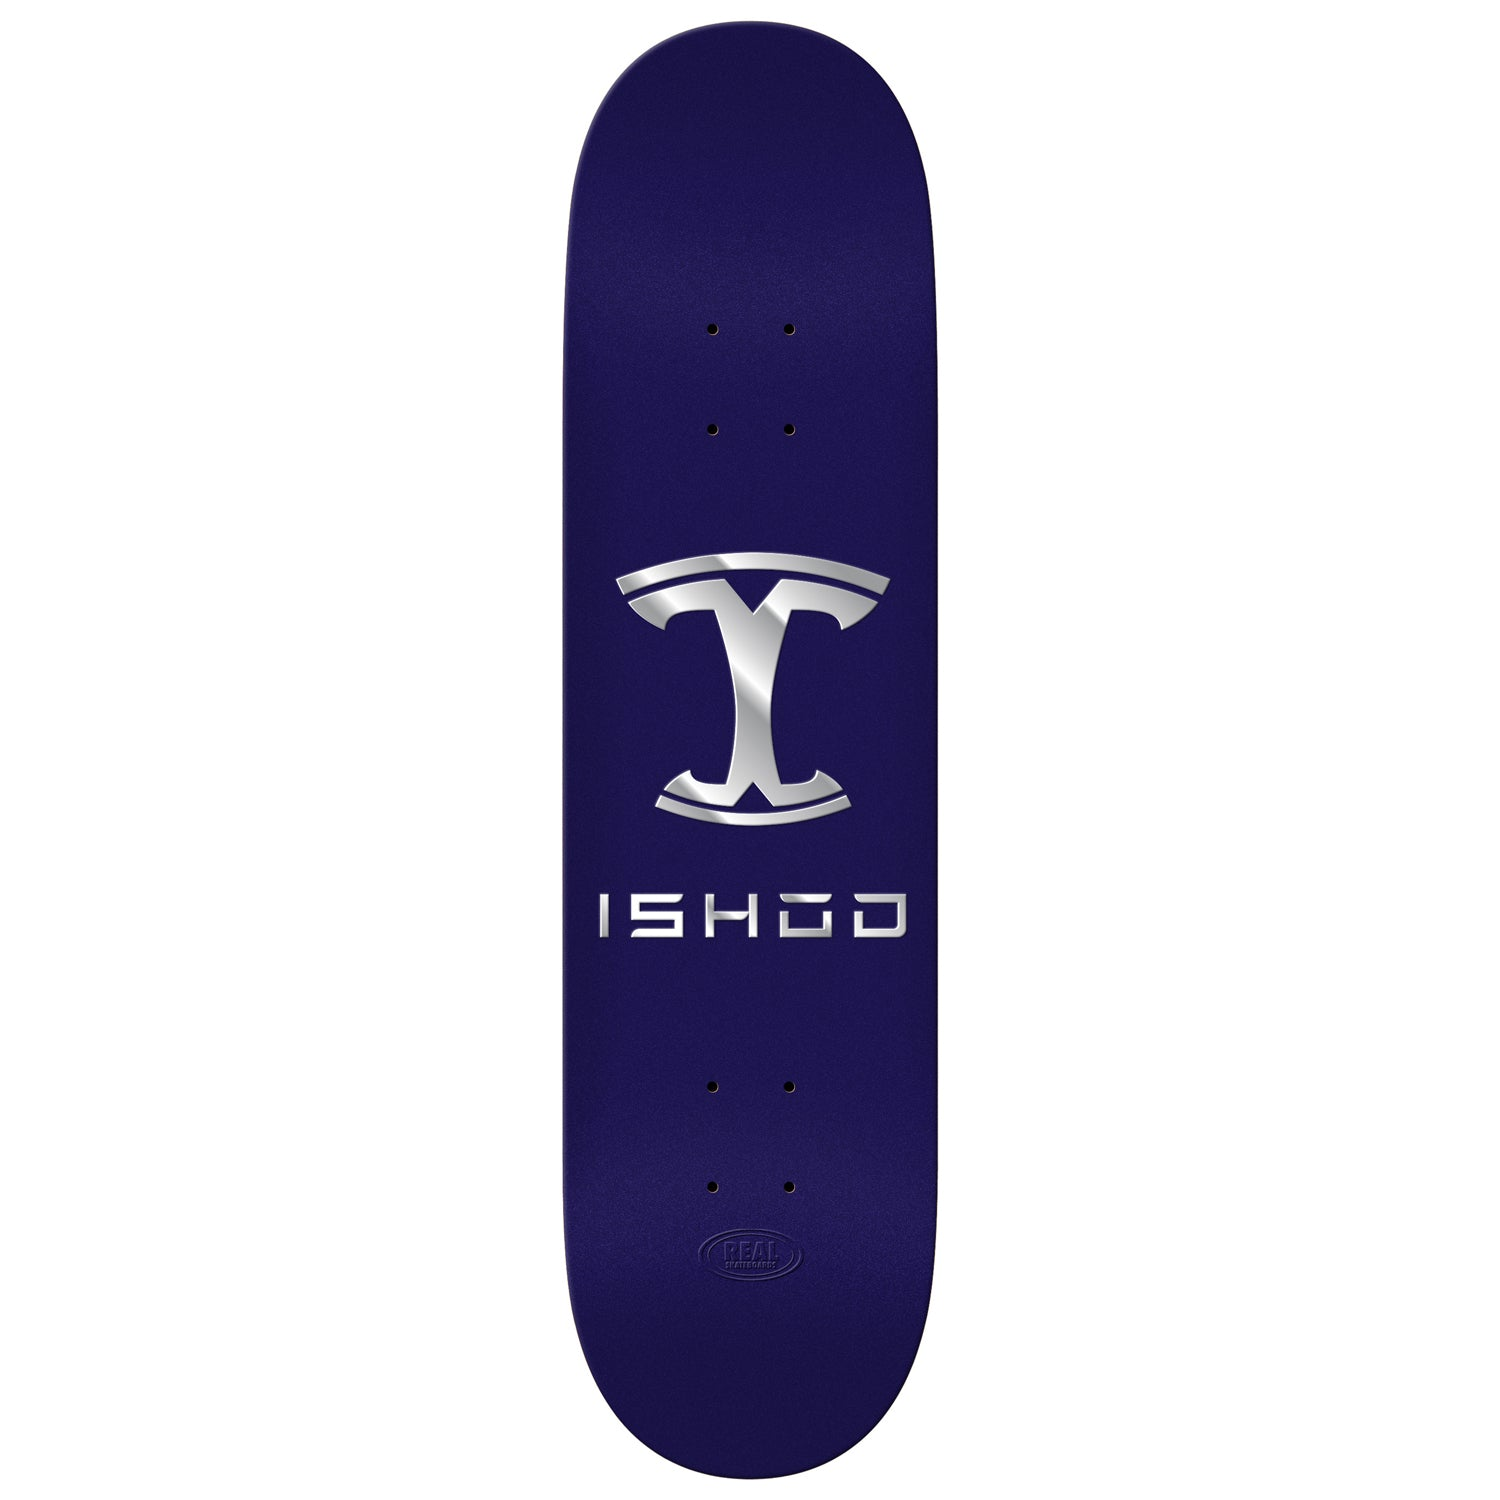 Real Deck Ishod Model W 8.38